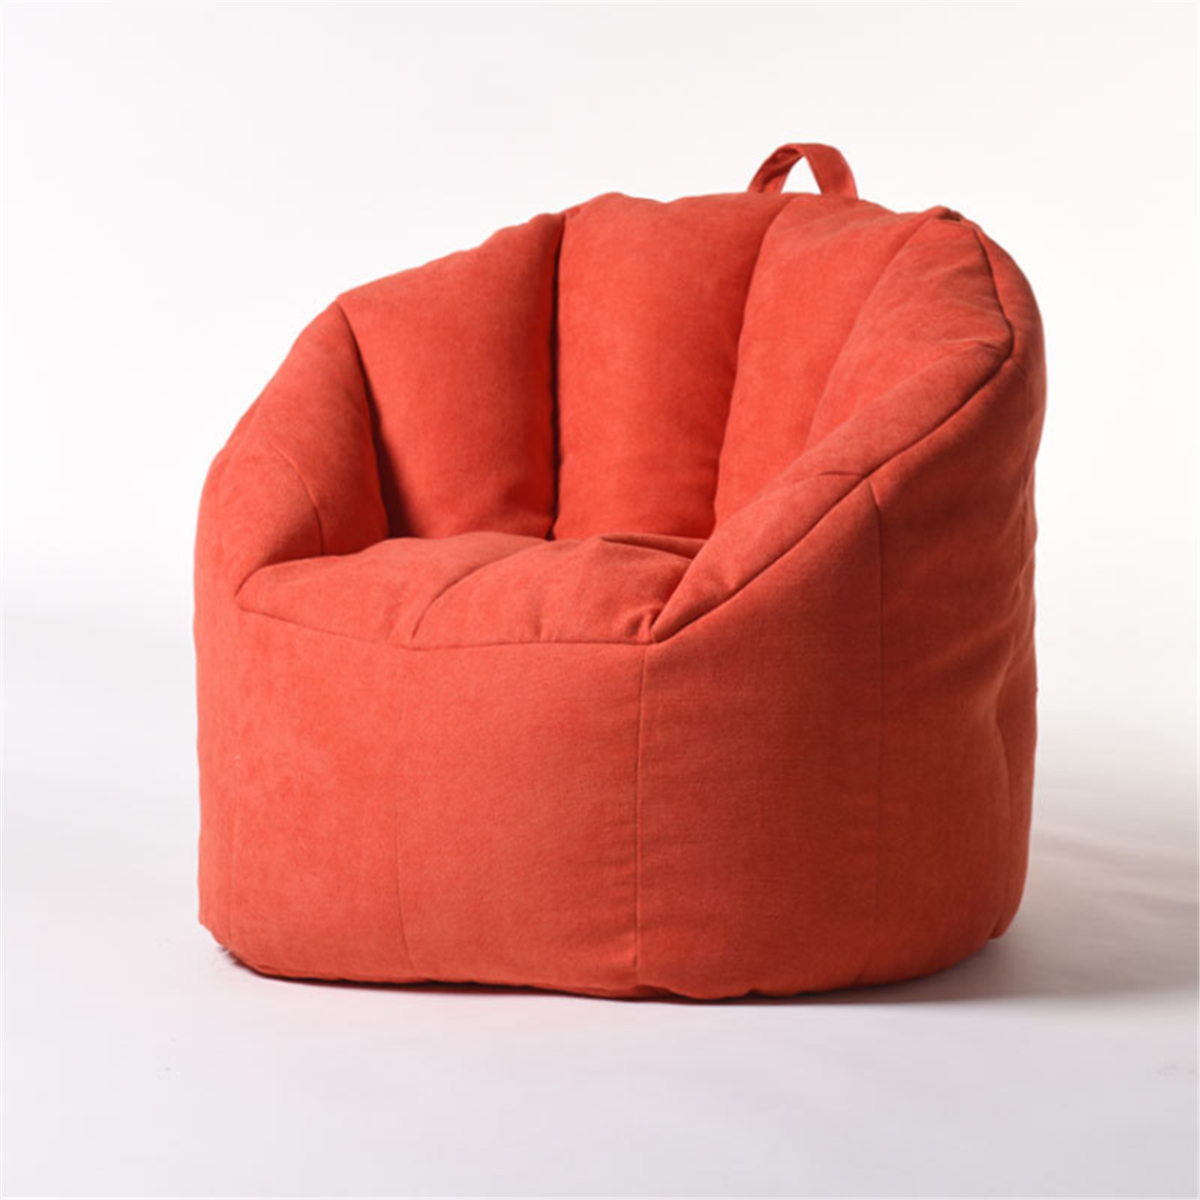 Big Joe Milano Bean Bag Chair Multiple Colors Available Comfort For Kids & Adult Covers